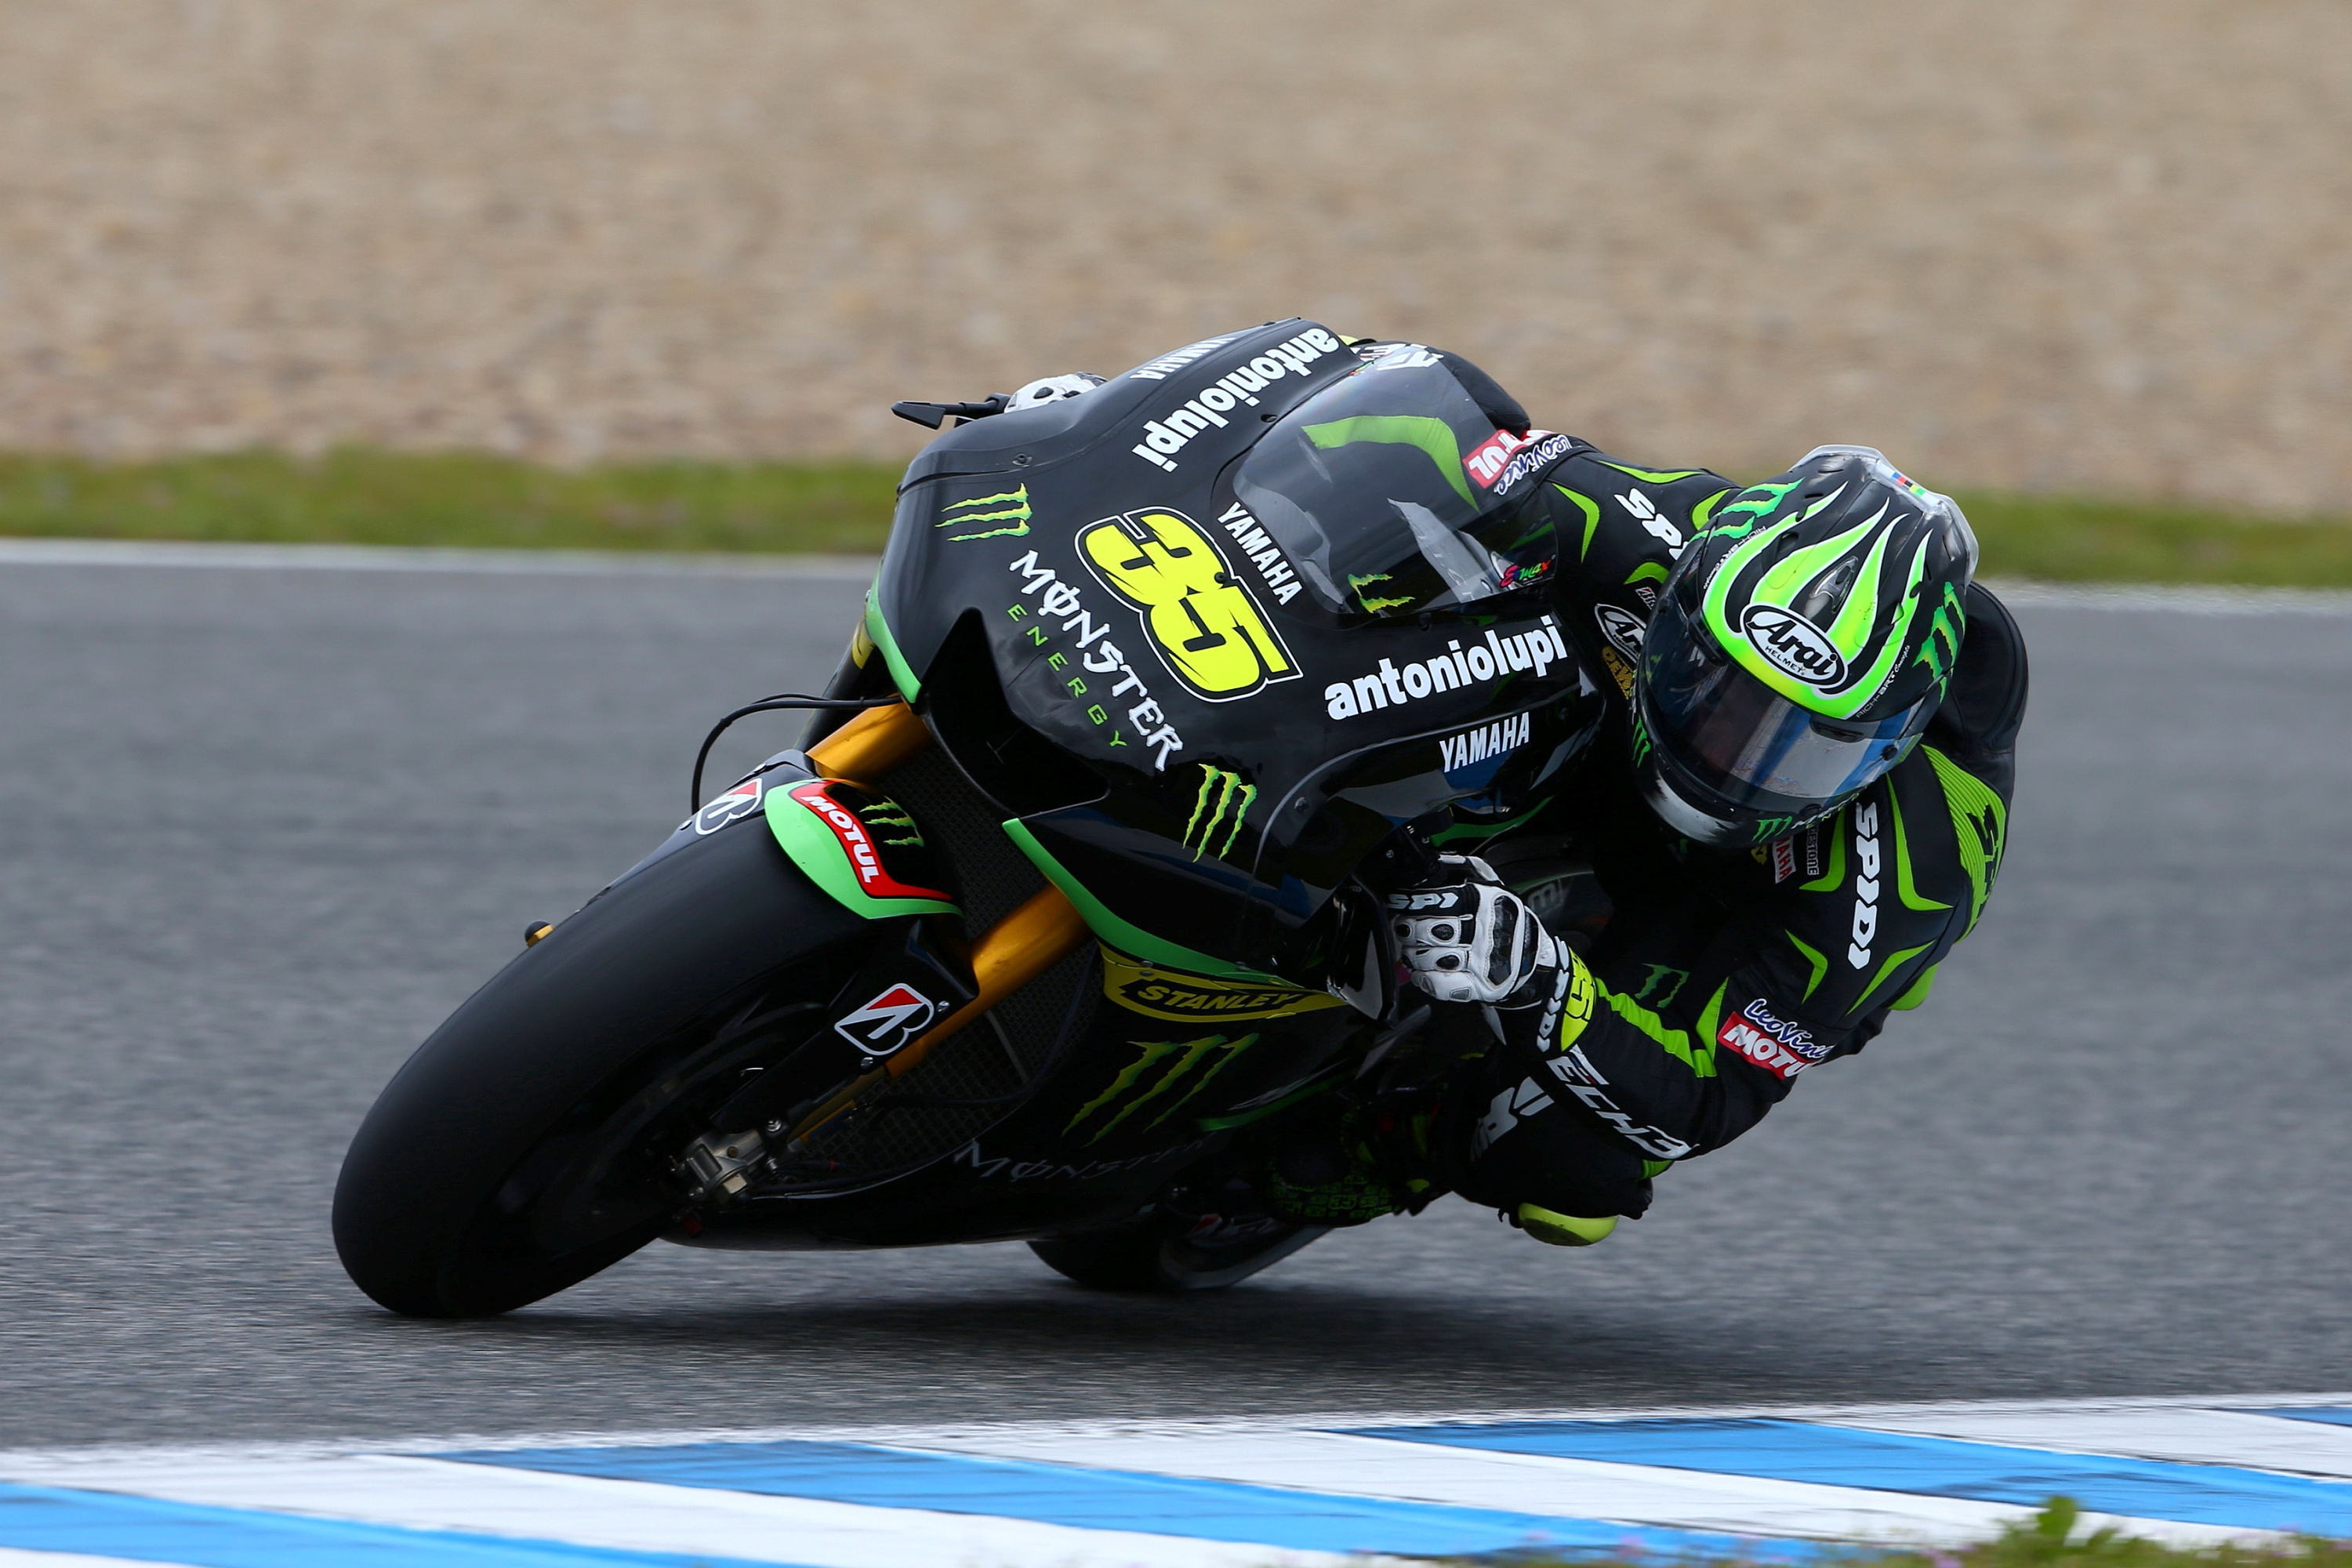 Crutchlow in command at Jerez MotoGP test